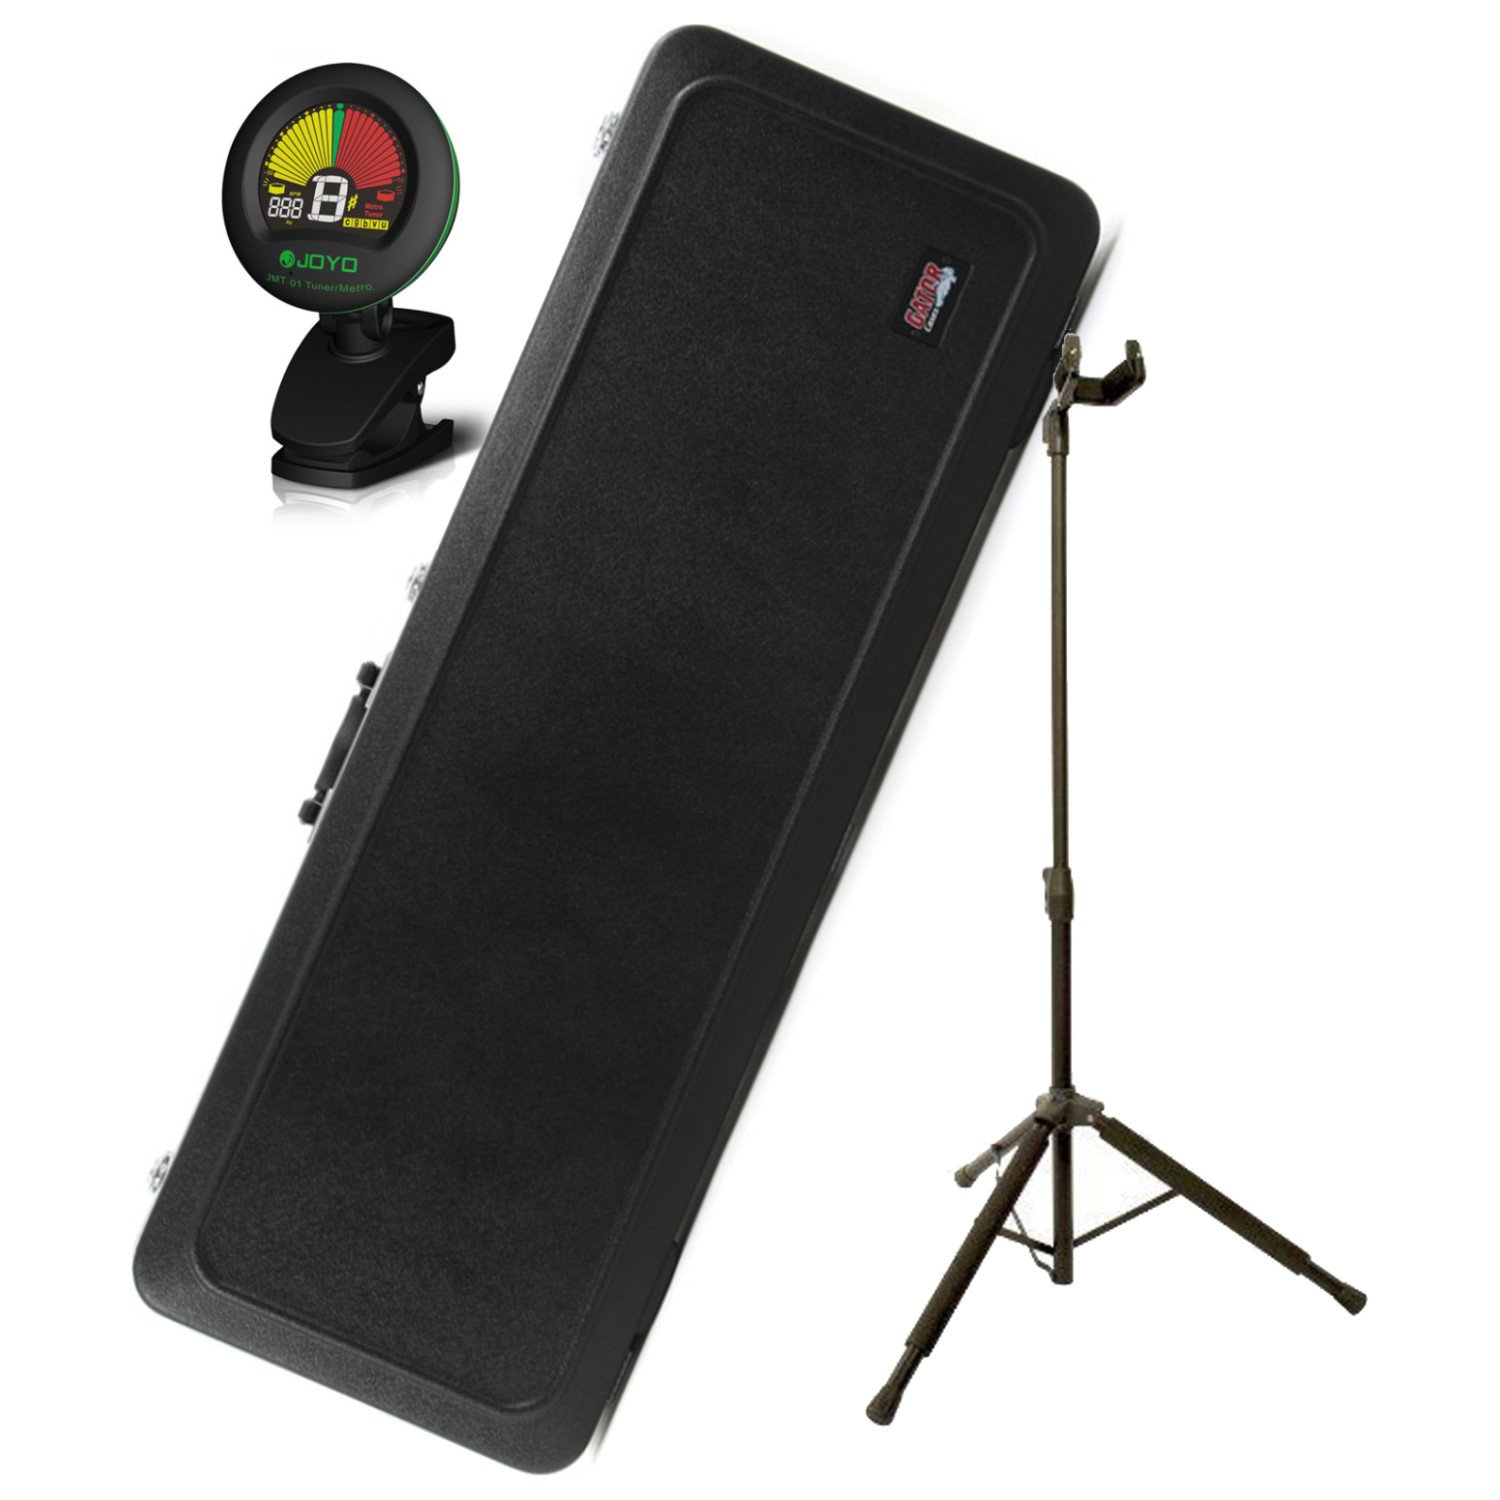 Cheap Gator GC-ELEC-A Deluxe Electric Guitar Case w/Tuner and Guitar Stand Black Friday & Cyber Monday 2019